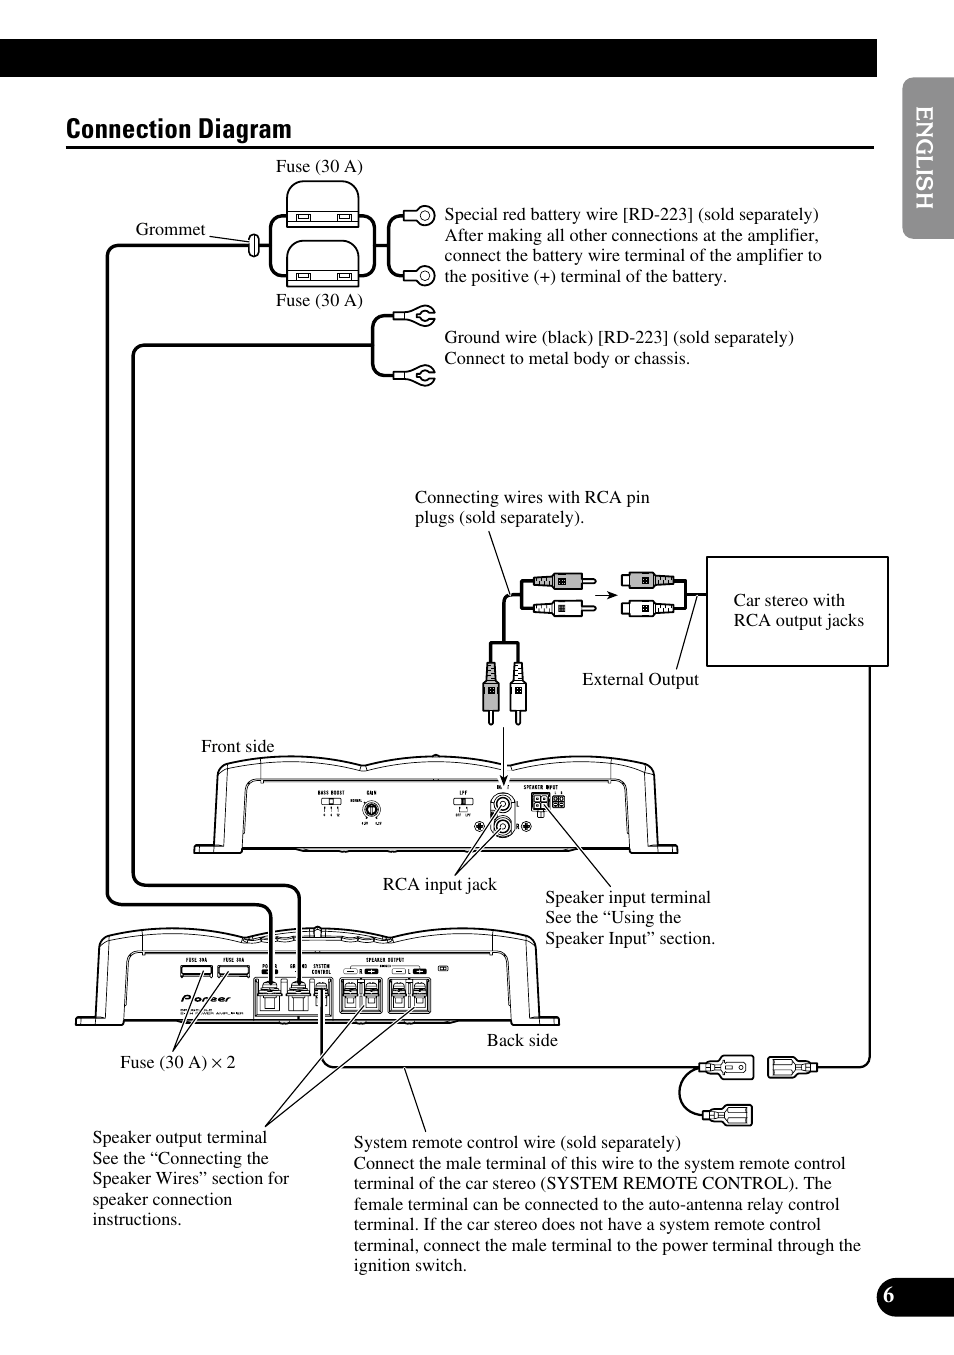 hight resolution of connection diagram pioneer gm 5200t user manual page 7 85 sterling lt9500 wiring diagrams pioneer wiring diagrams for gm